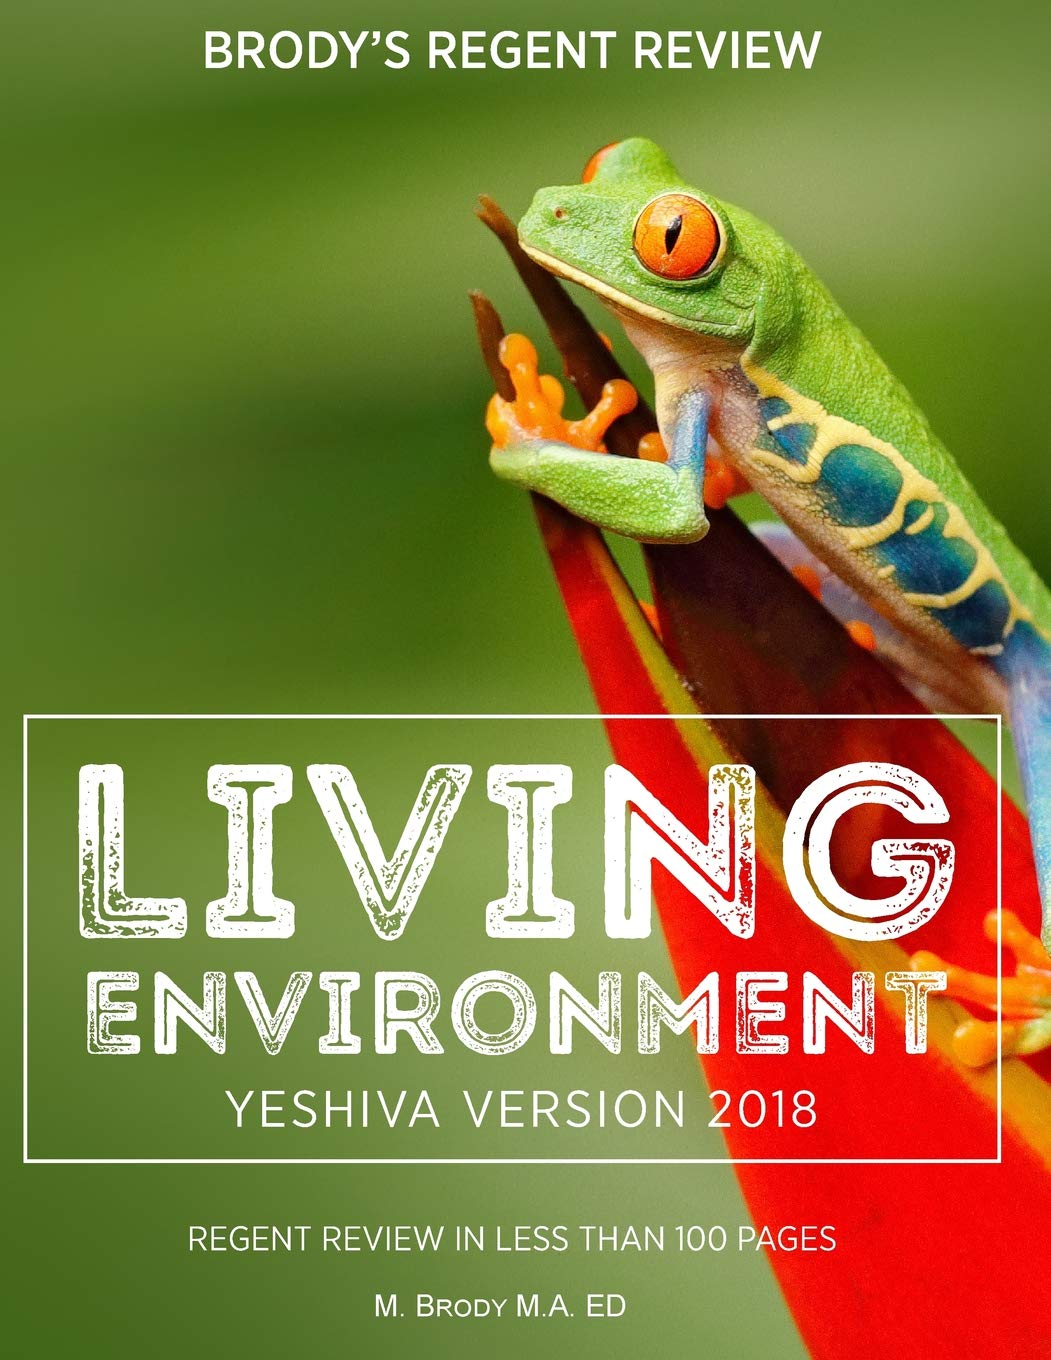 Download Brody's Regent Review: Living Environment Yeshiva Version 2018: Regent Review in Less Than 100 Pages PDF